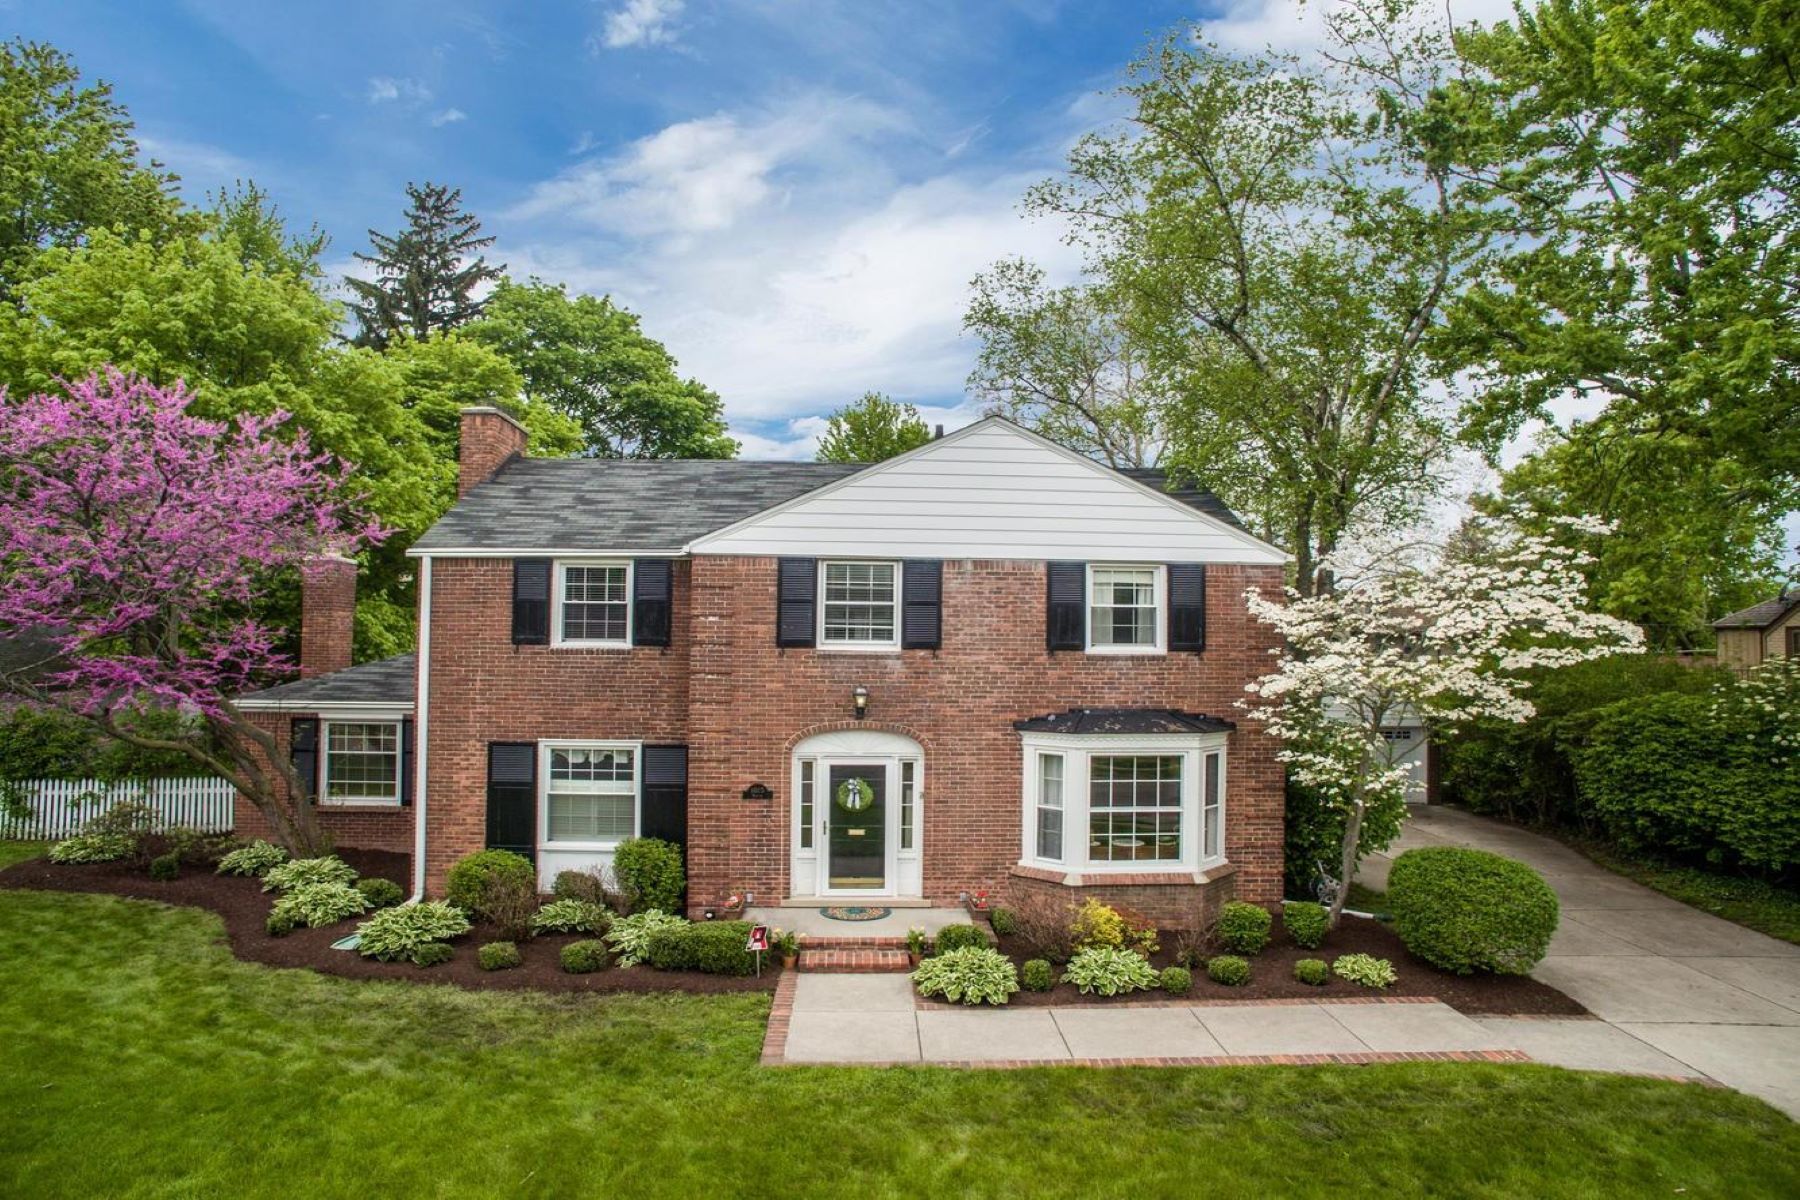 Single Family Homes for Sale at Grosse Pointe Park 1015 Bedford Rd Grosse Pointe Park, Michigan 48230 United States